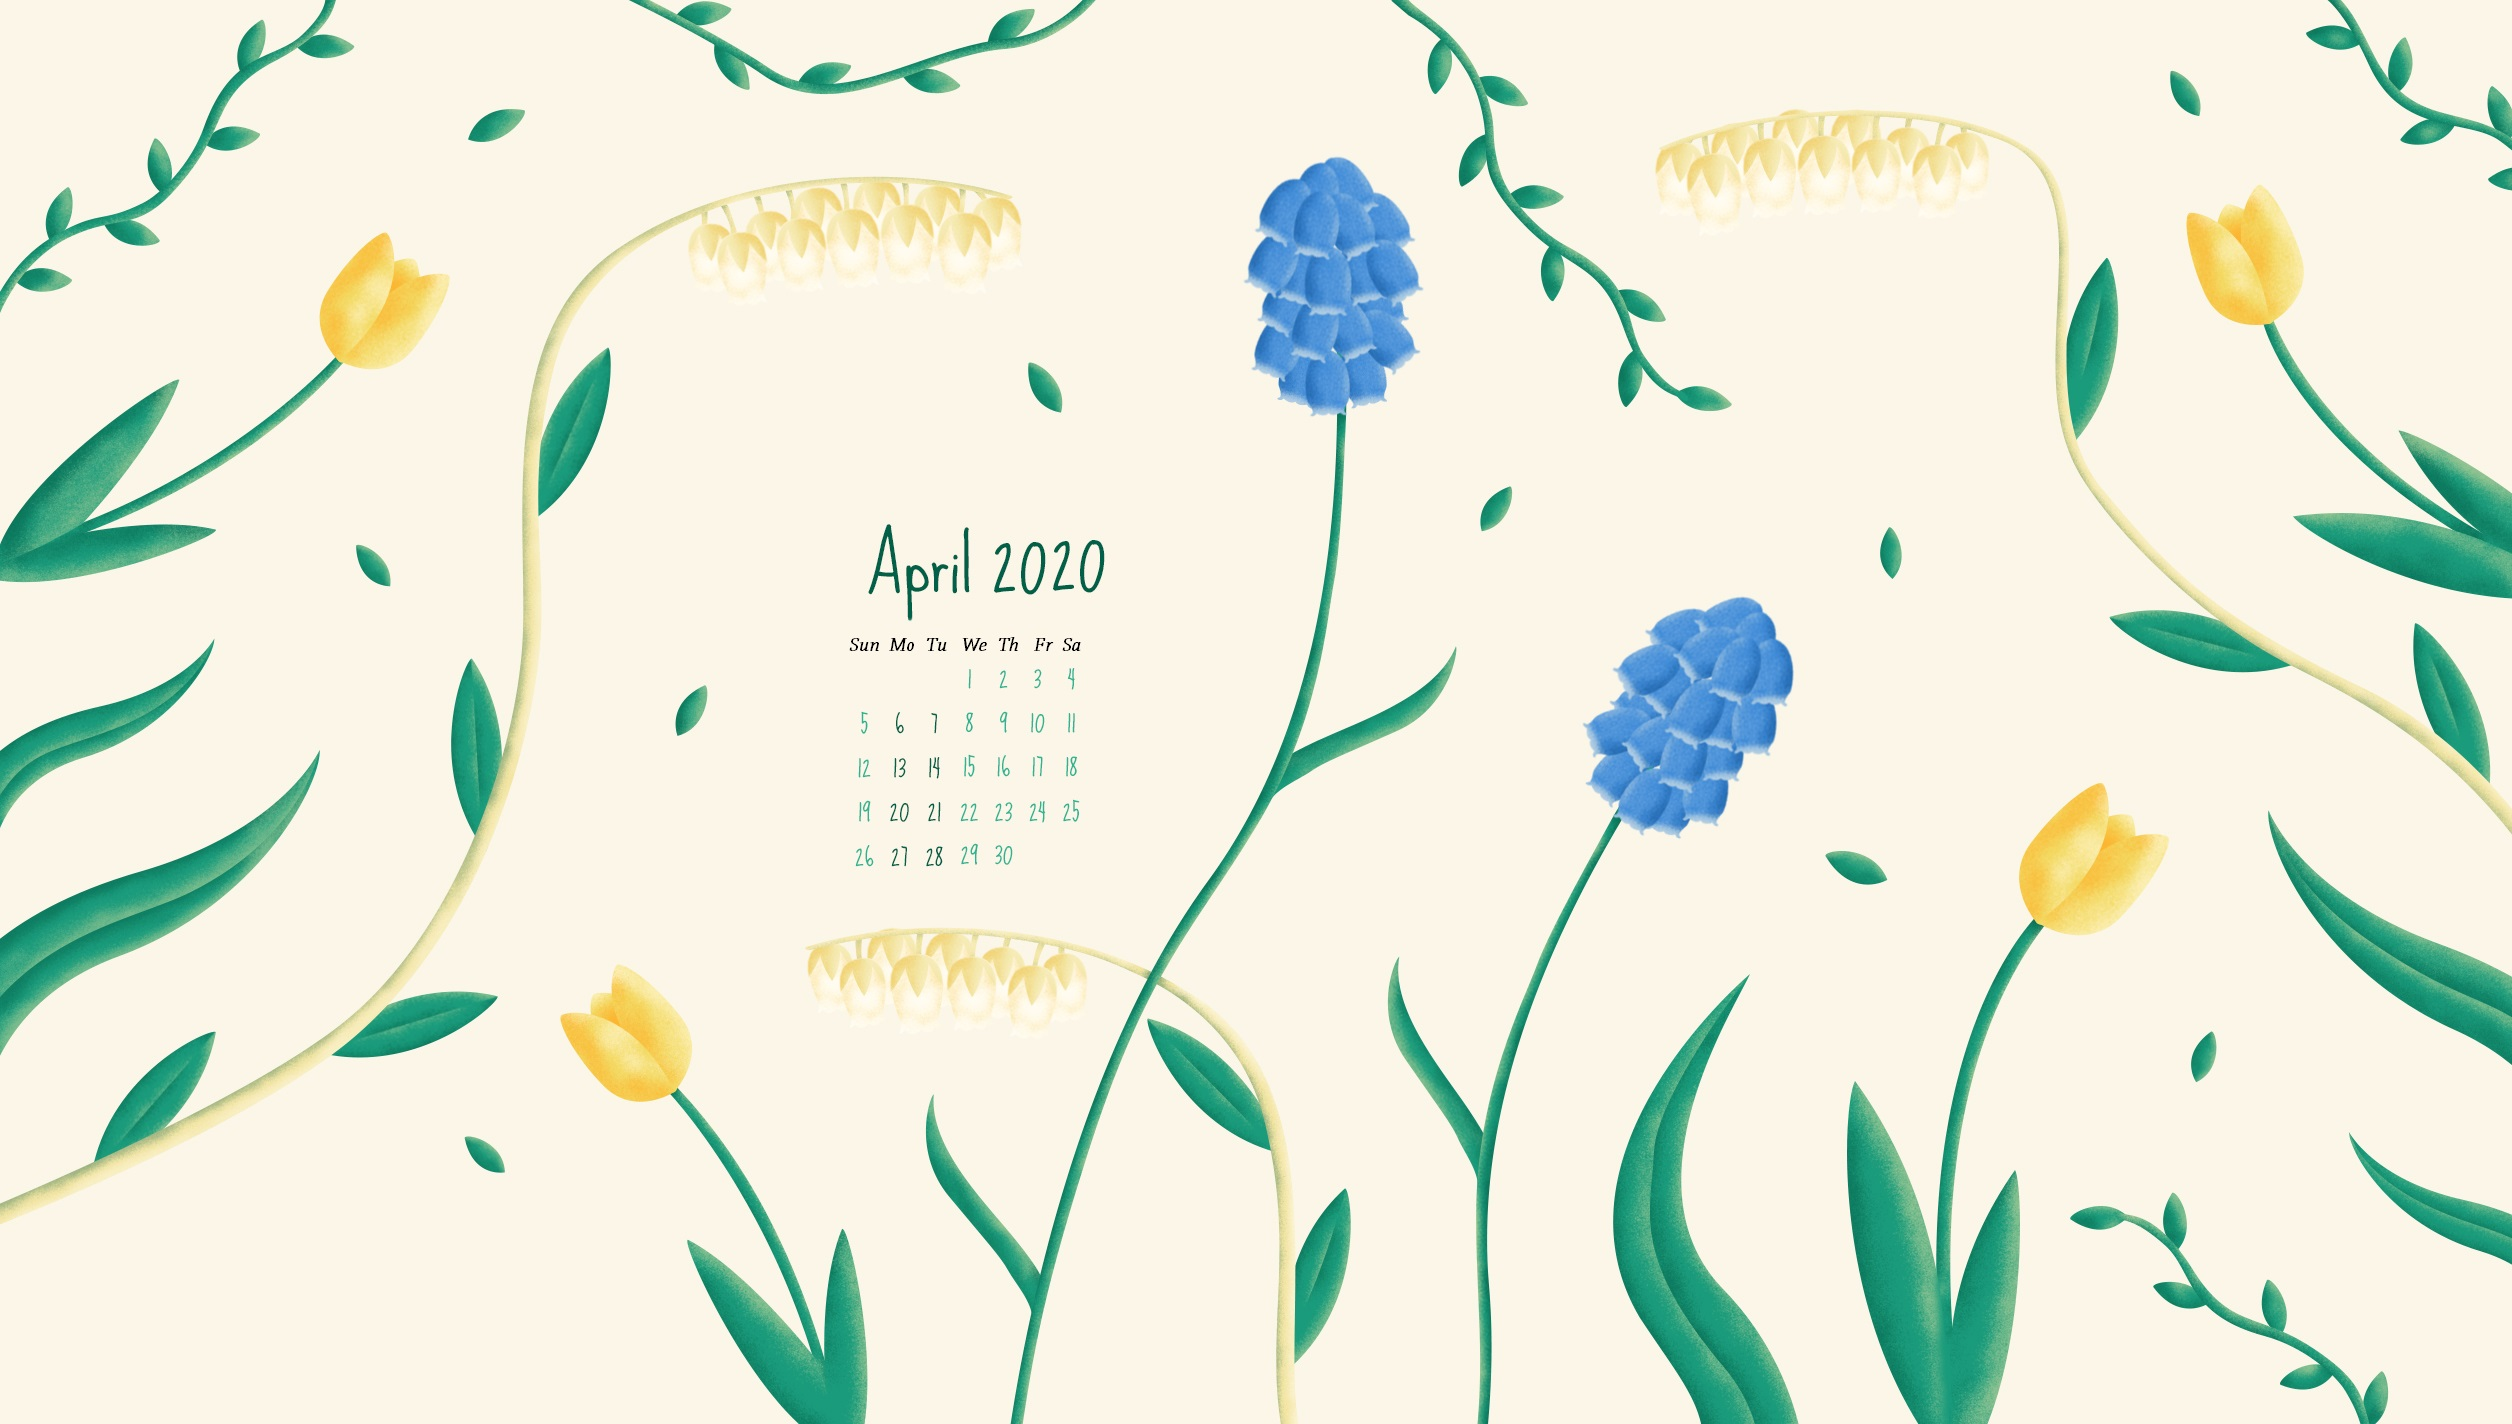 April 2020 HD Calendar Wallpaper